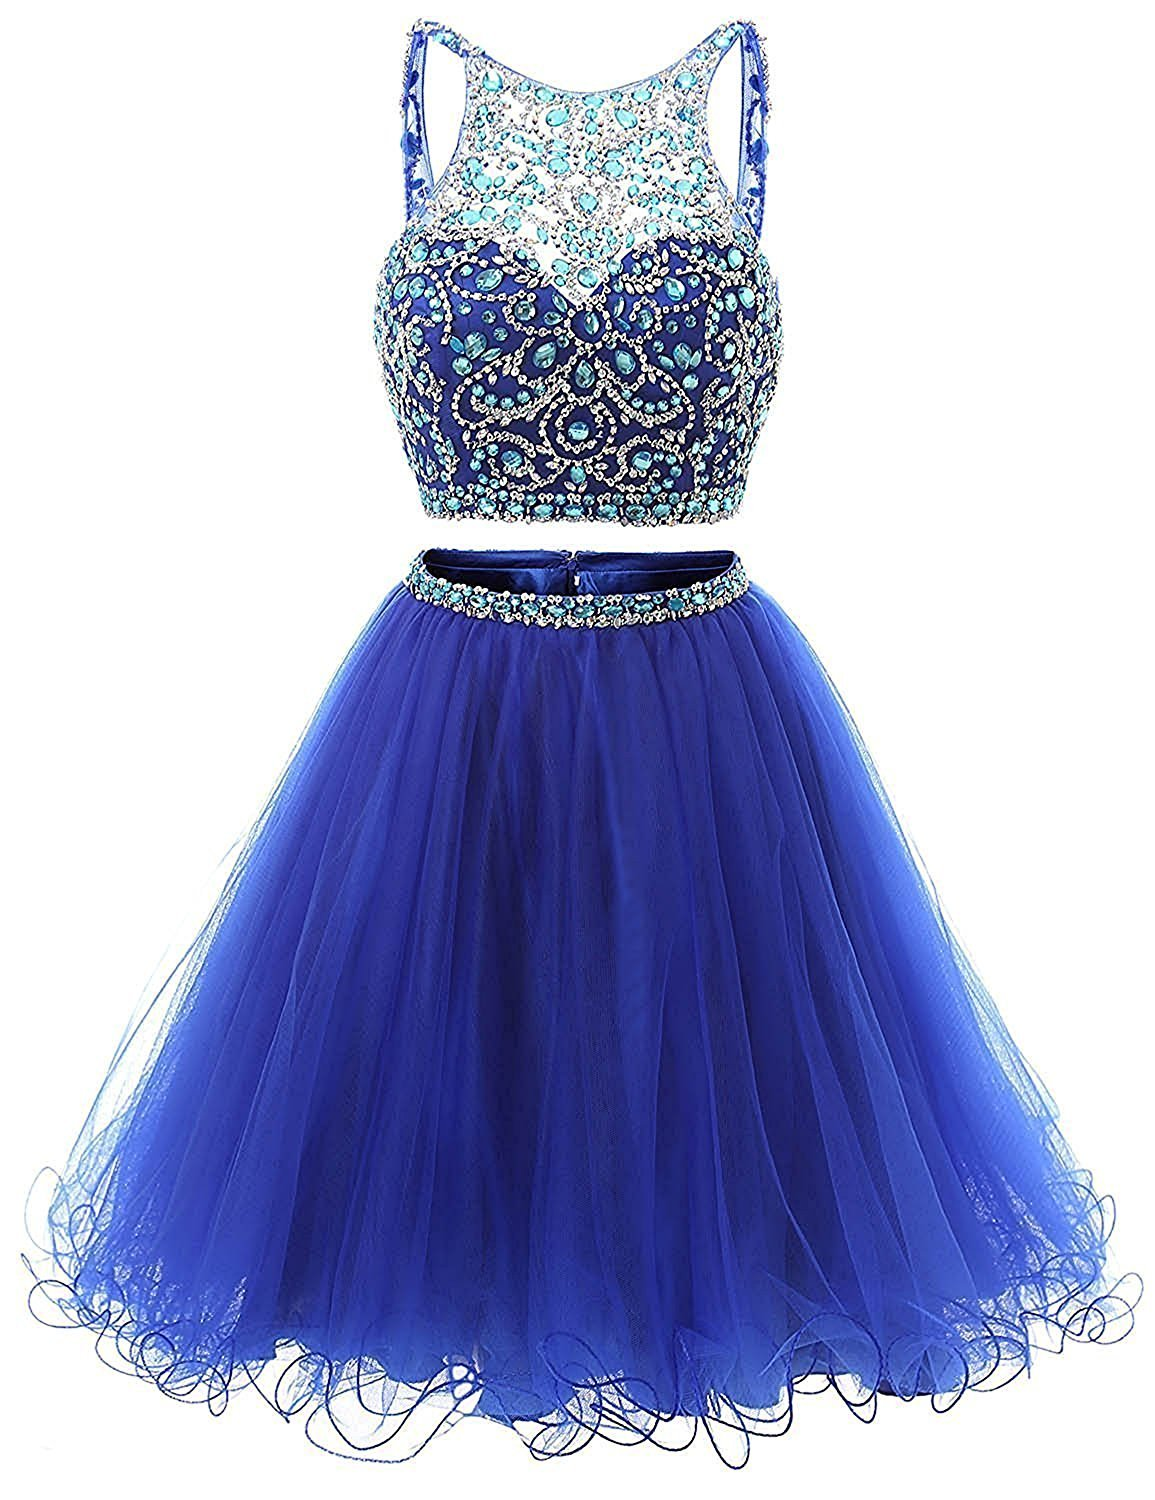 Primary image for Crystal Two Pieces Beads Homecoming Dresses Short Sequined Tulle Prom Party Gown